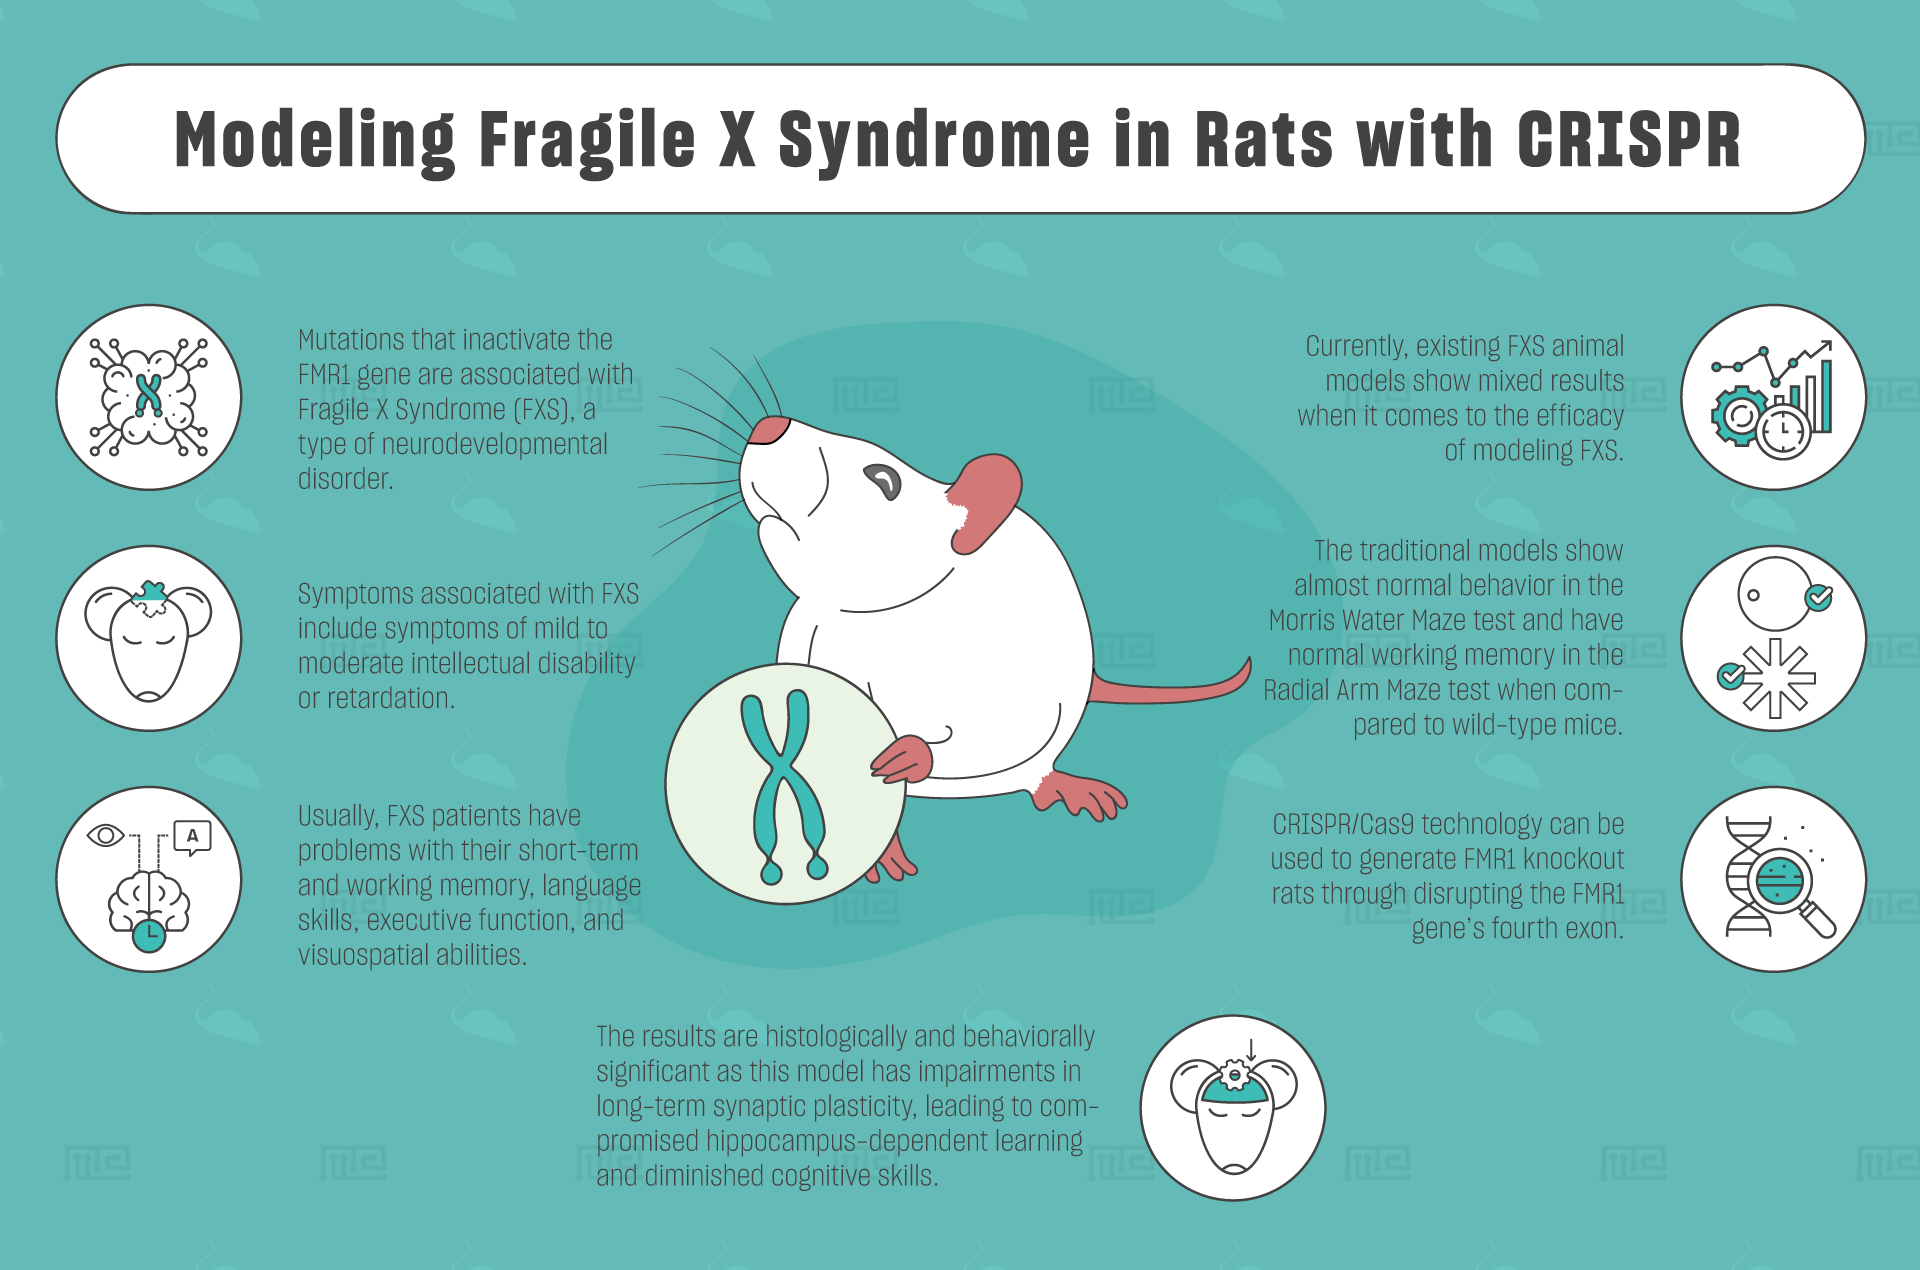 Modeling Fragile X Syndrome in Rats with CRISPR